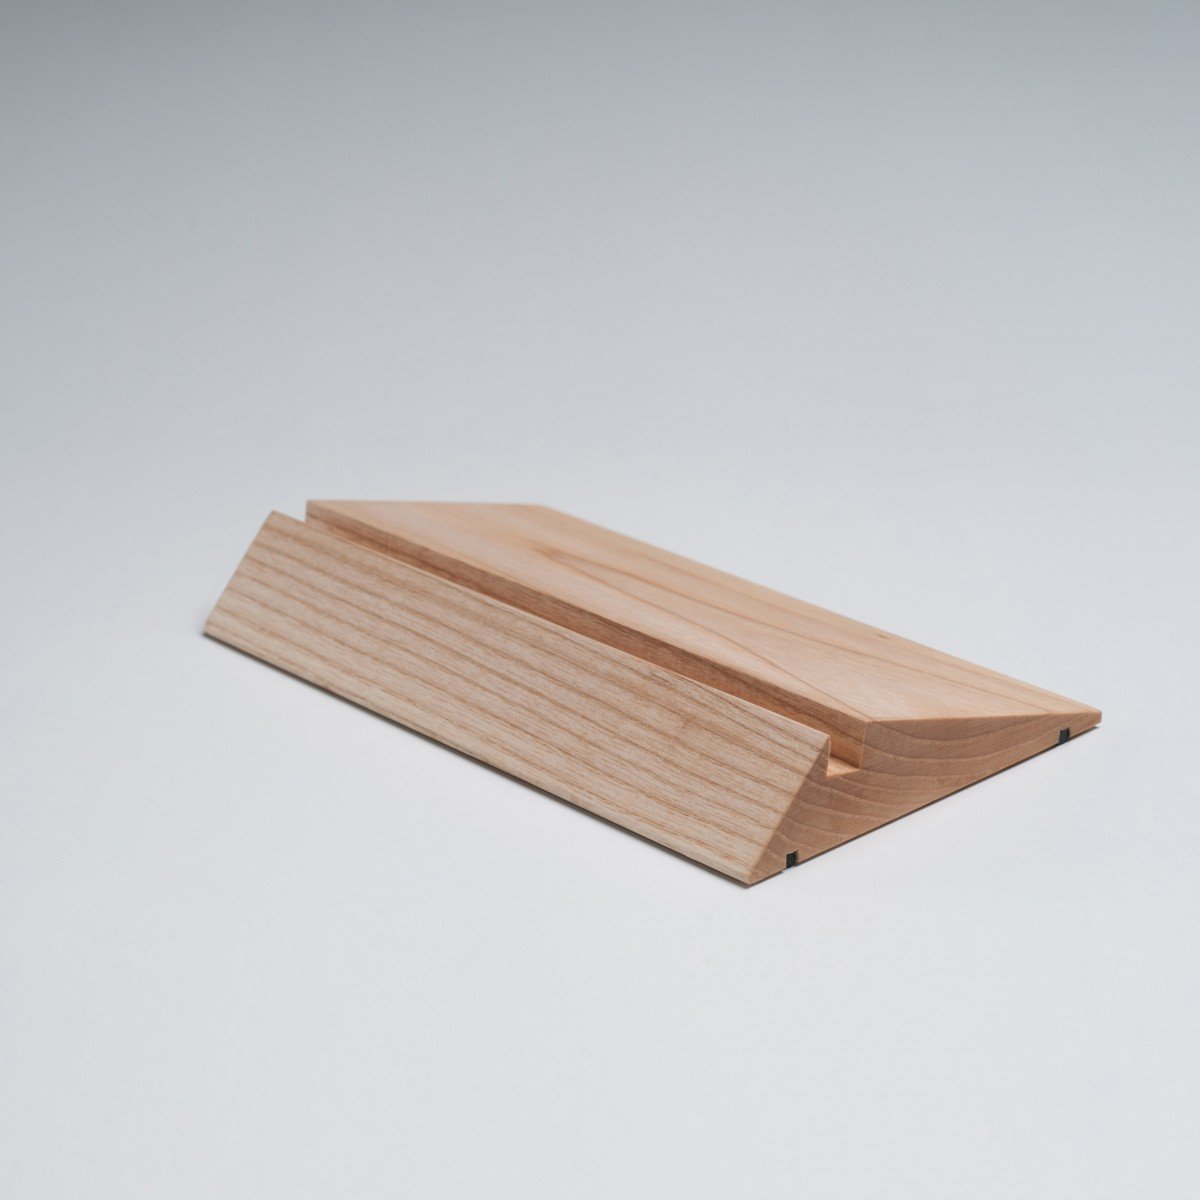 Lupadesign WEDGE - Tablethalterung